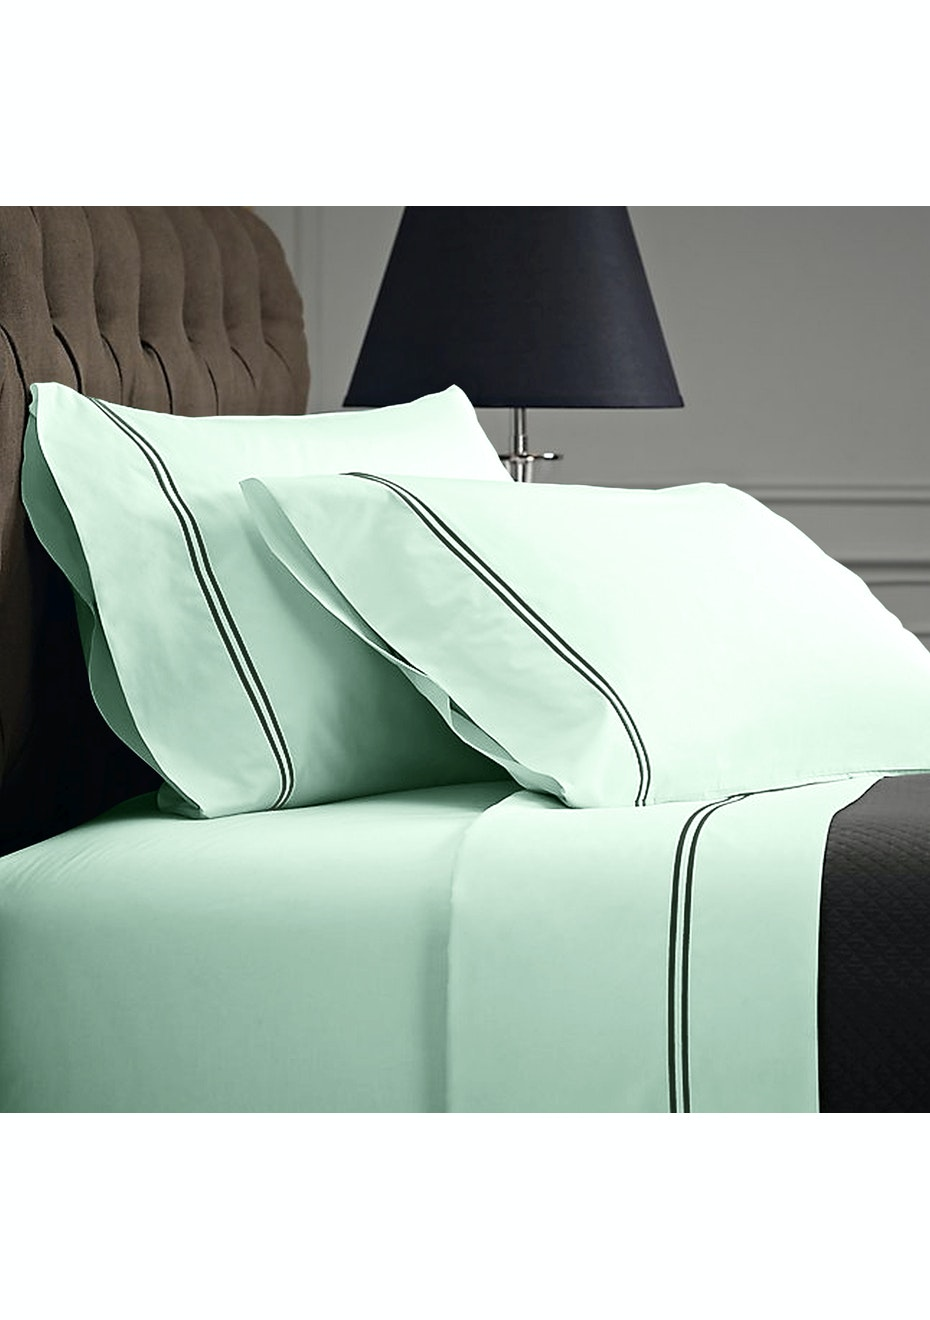 Style & Co 1000 Thread count Egyptian Cotton Hotel Collection Sorrento Sheet sets Mega King Mist